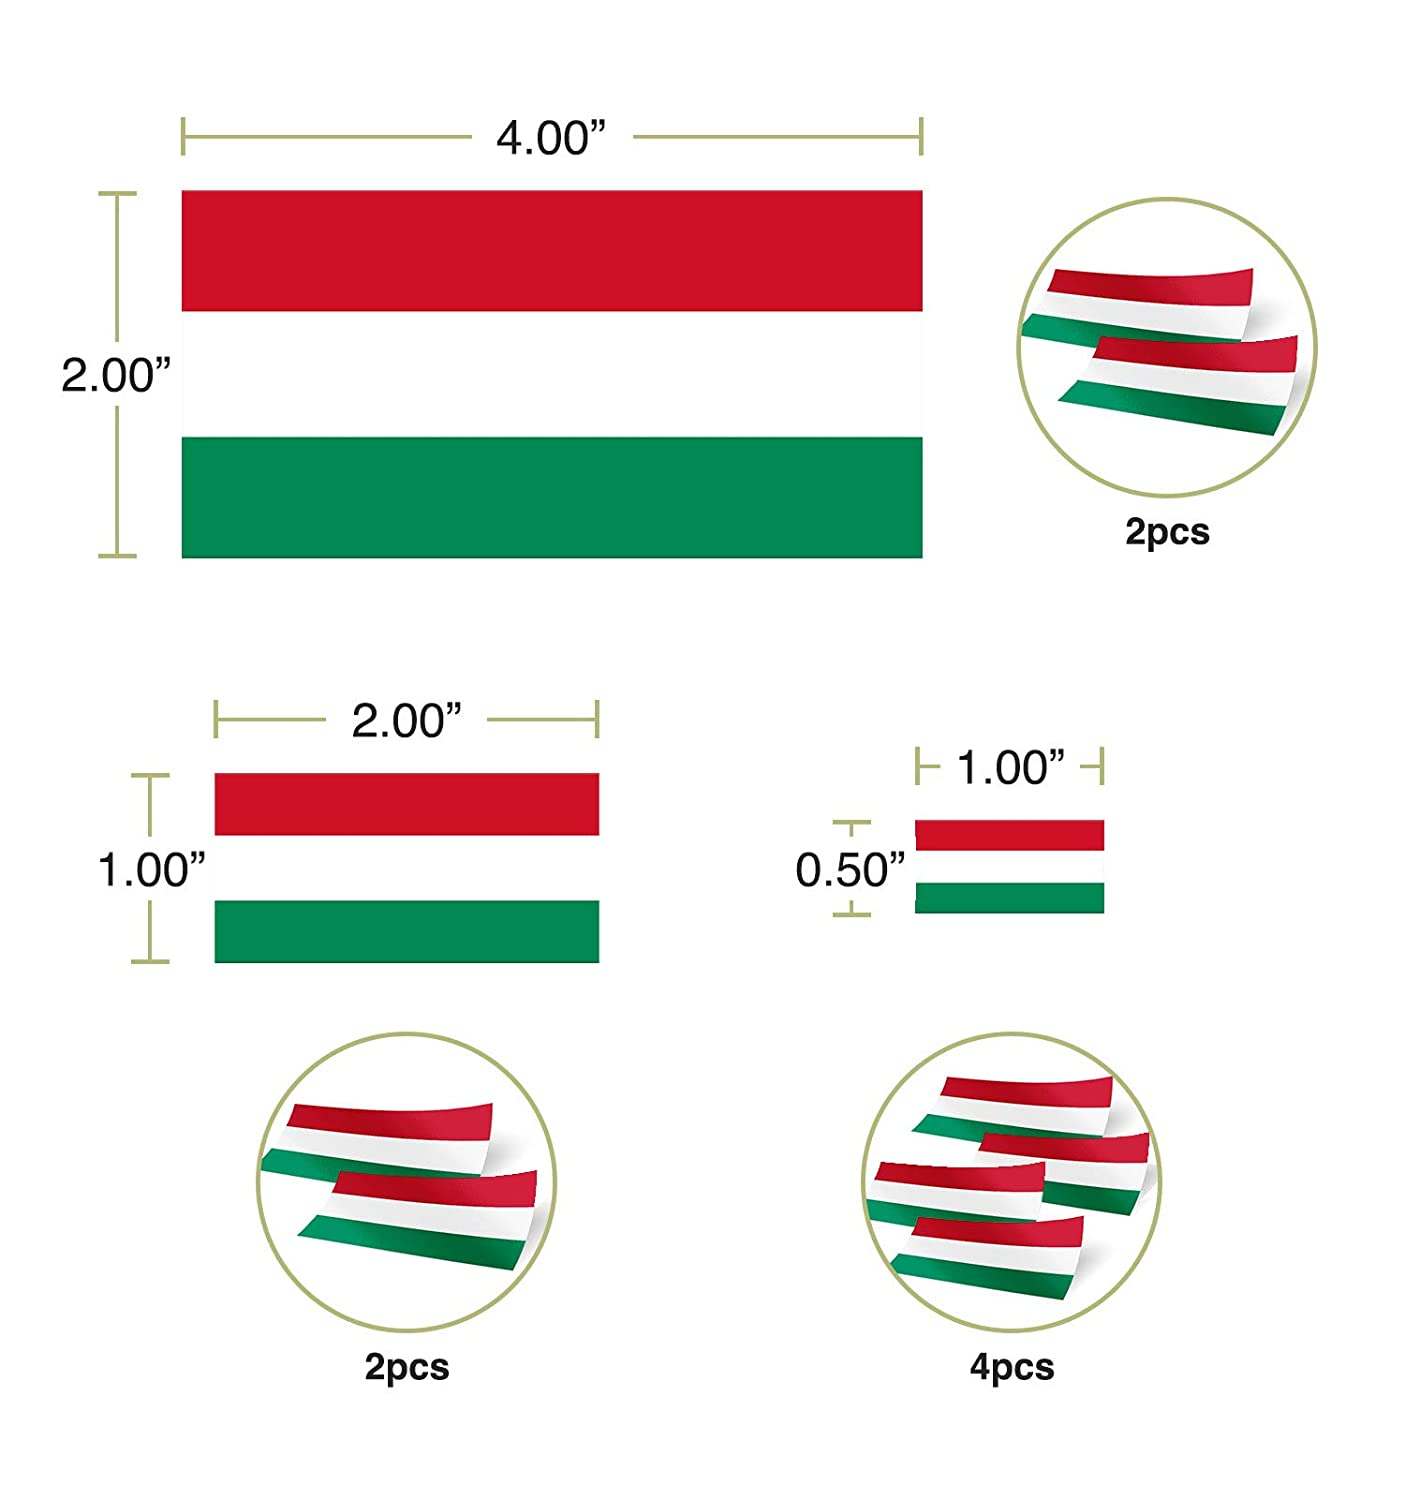 Desert Cactus Hungary Country Flag Sticker Decal Variety Size Pack 8 Total Pieces Kids Logo Scrapbook Car Vinyl Window Bumper Laptop V